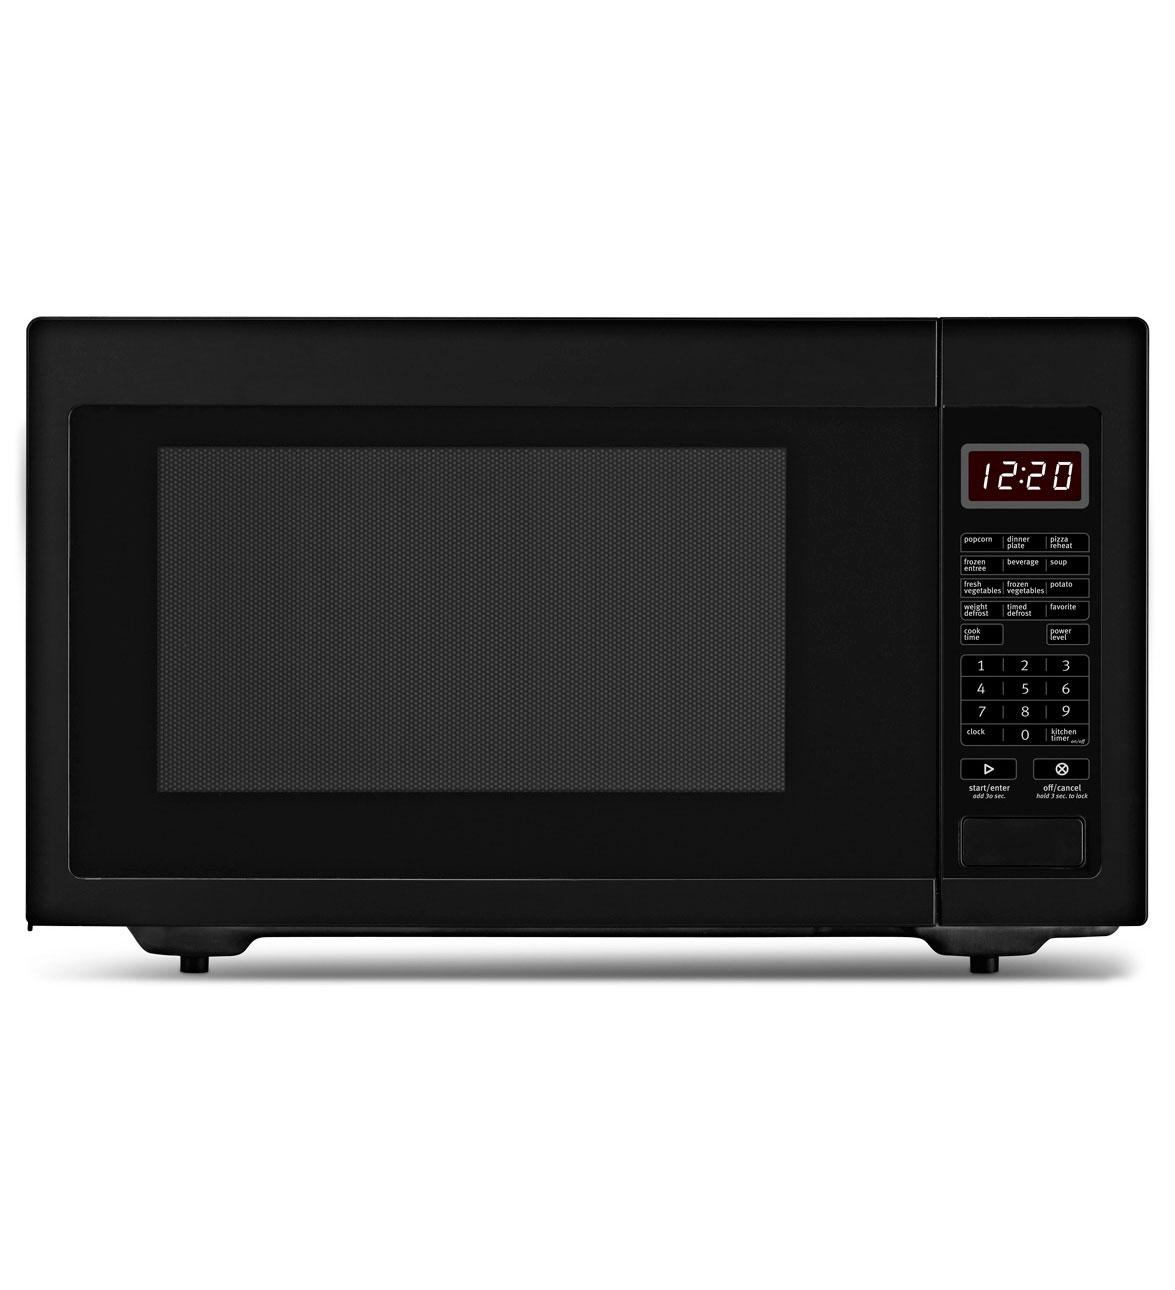 UMC5165AS Maytag umc5165as Countertop Microwaves